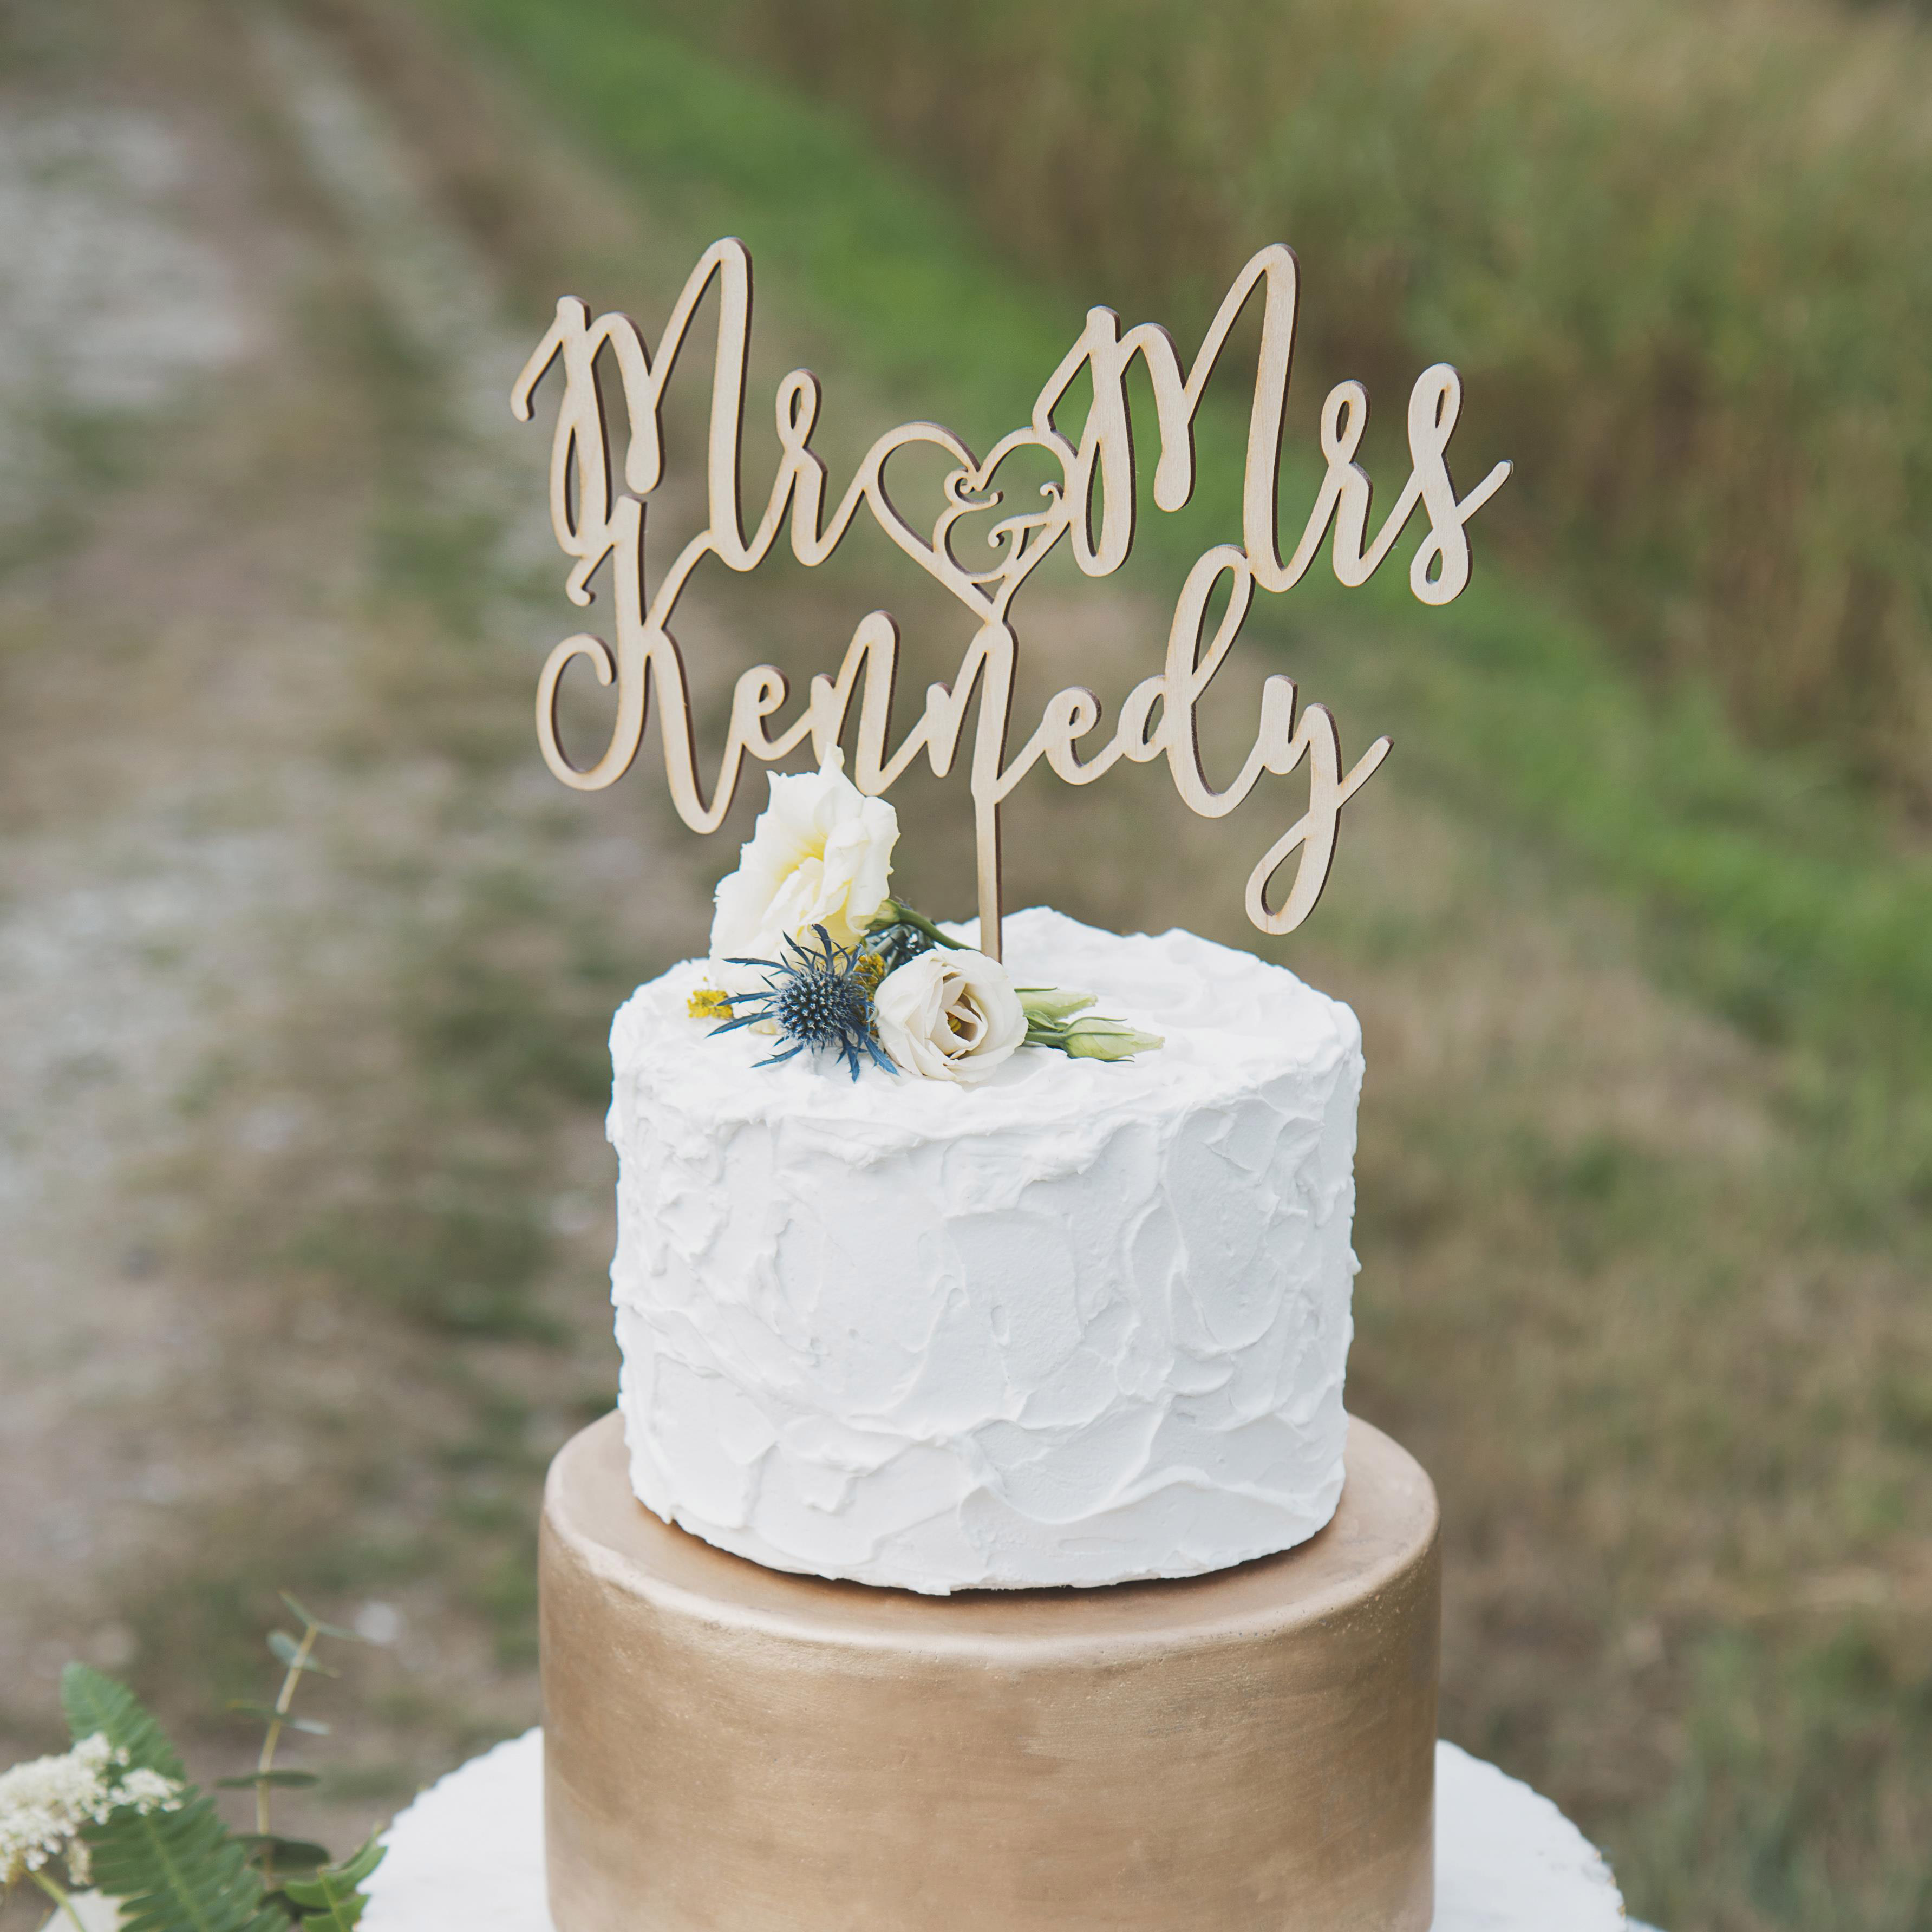 Elegant Mr and Mrs Custom Wedding Cake Topper by Thistle and Lace